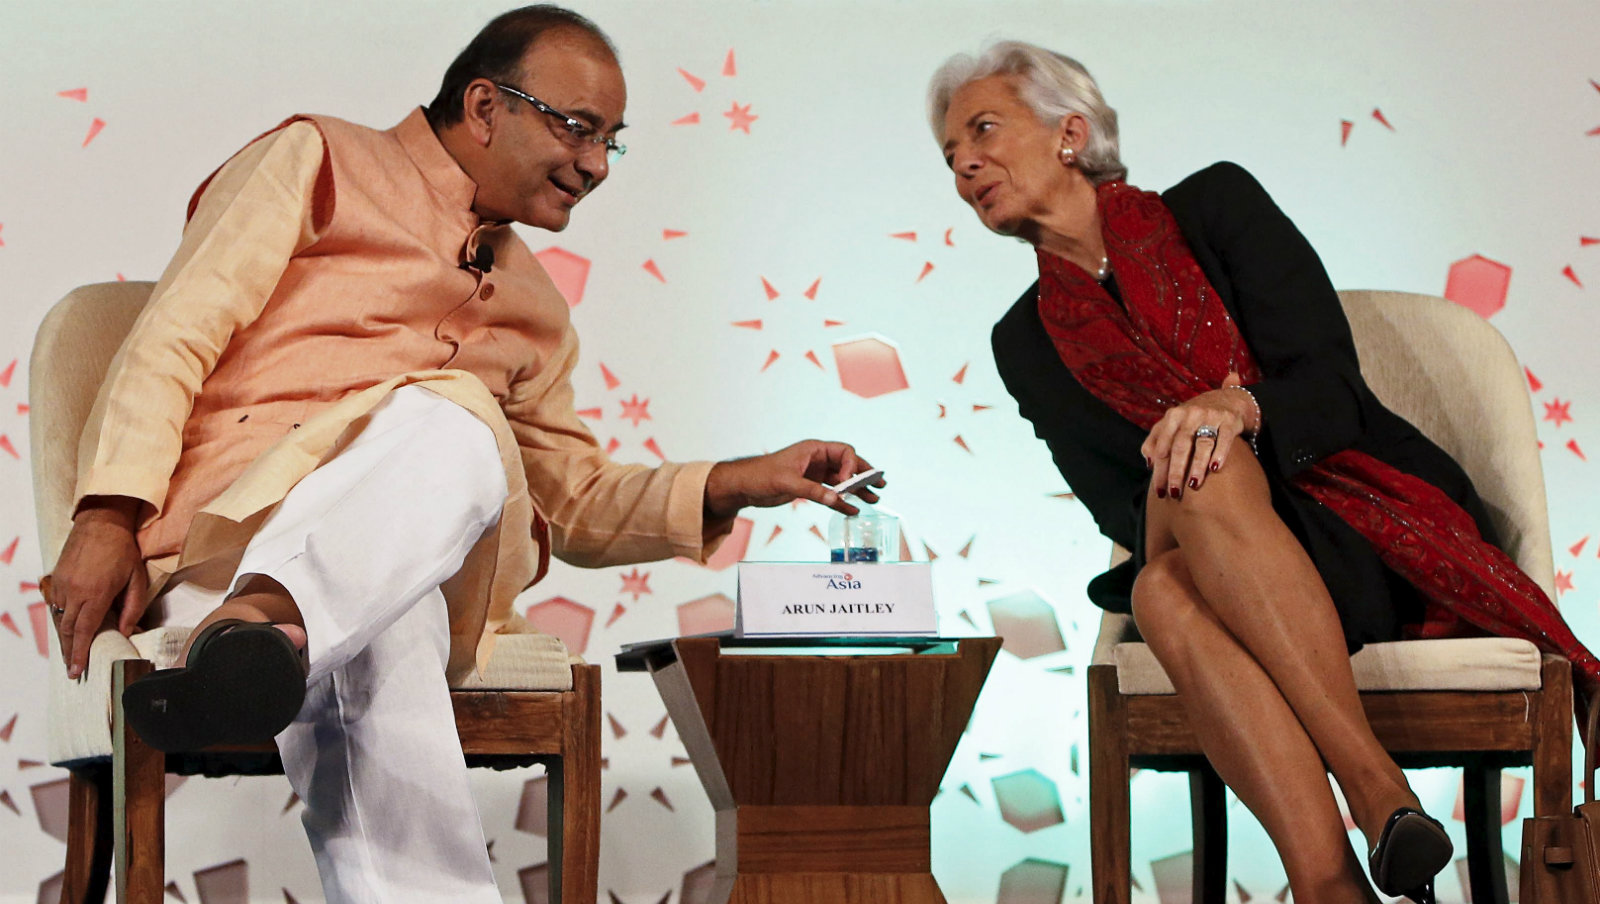 """India's Finance Minister Arun Jaitley speaks with International Monetary Fund (IMF) Managing Director Christine Lagarde after delivering his closing address during the """"Advancing Asia: Investing for the Future"""" conference in New Delhi, India, March 13, 2016."""